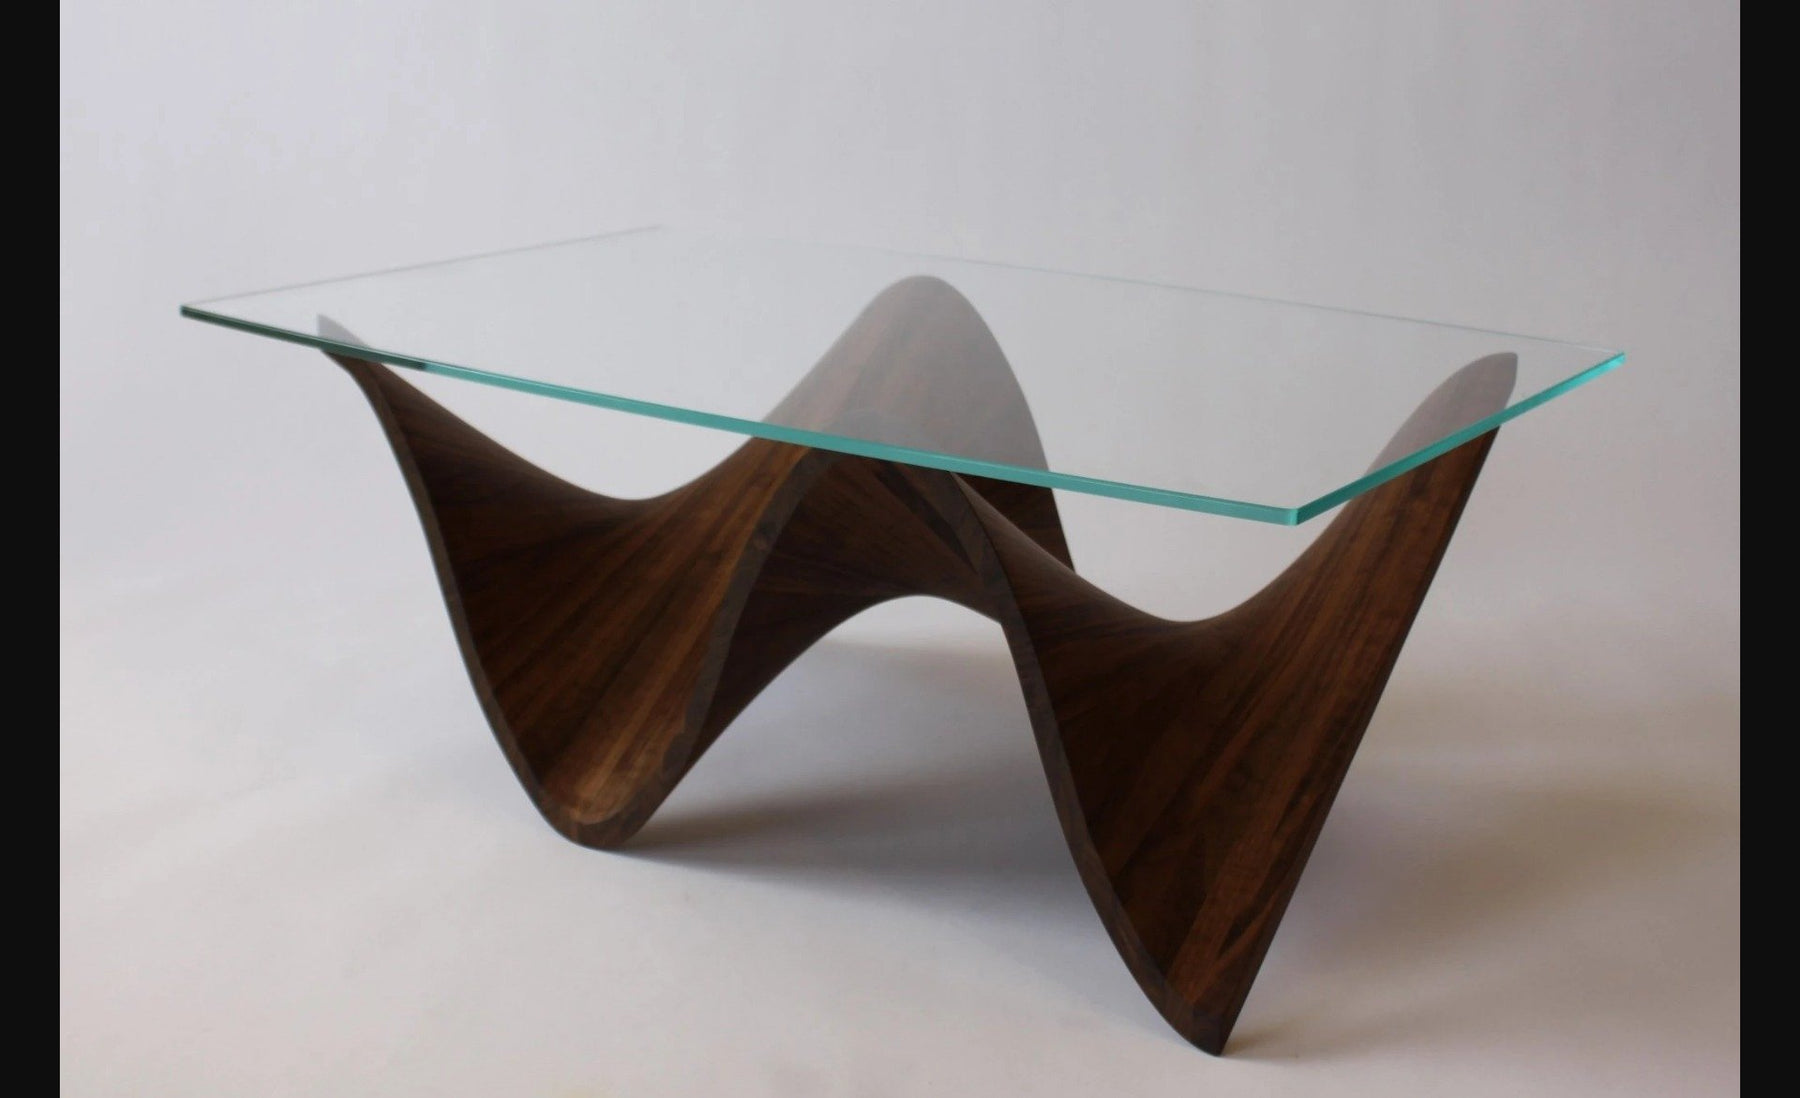 Wave Coffee Table by Merganzer Furniture | Artfest Ontario